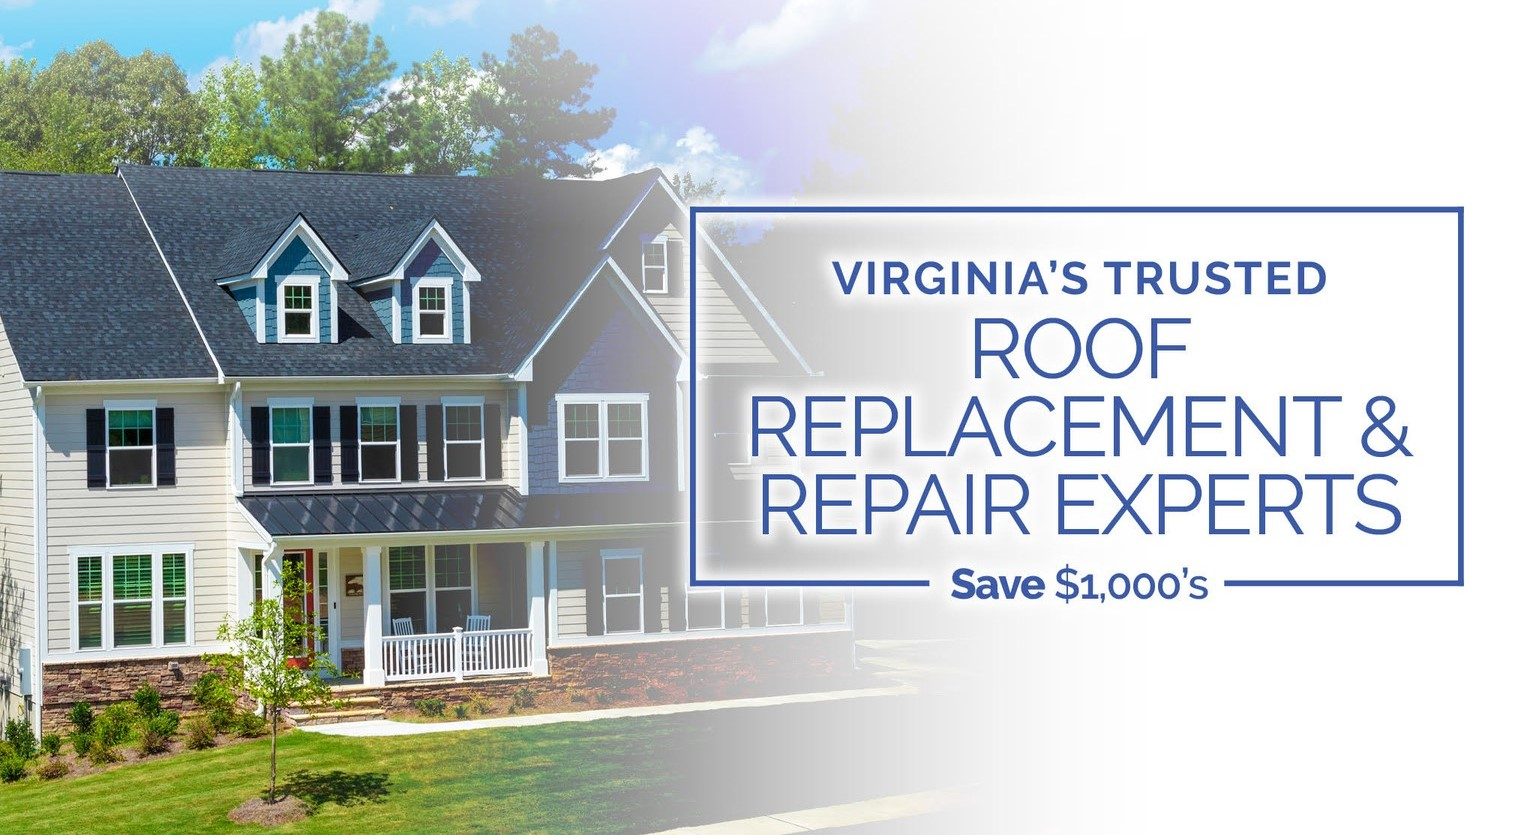 Roof Replacement & Repair Experts in Virginia